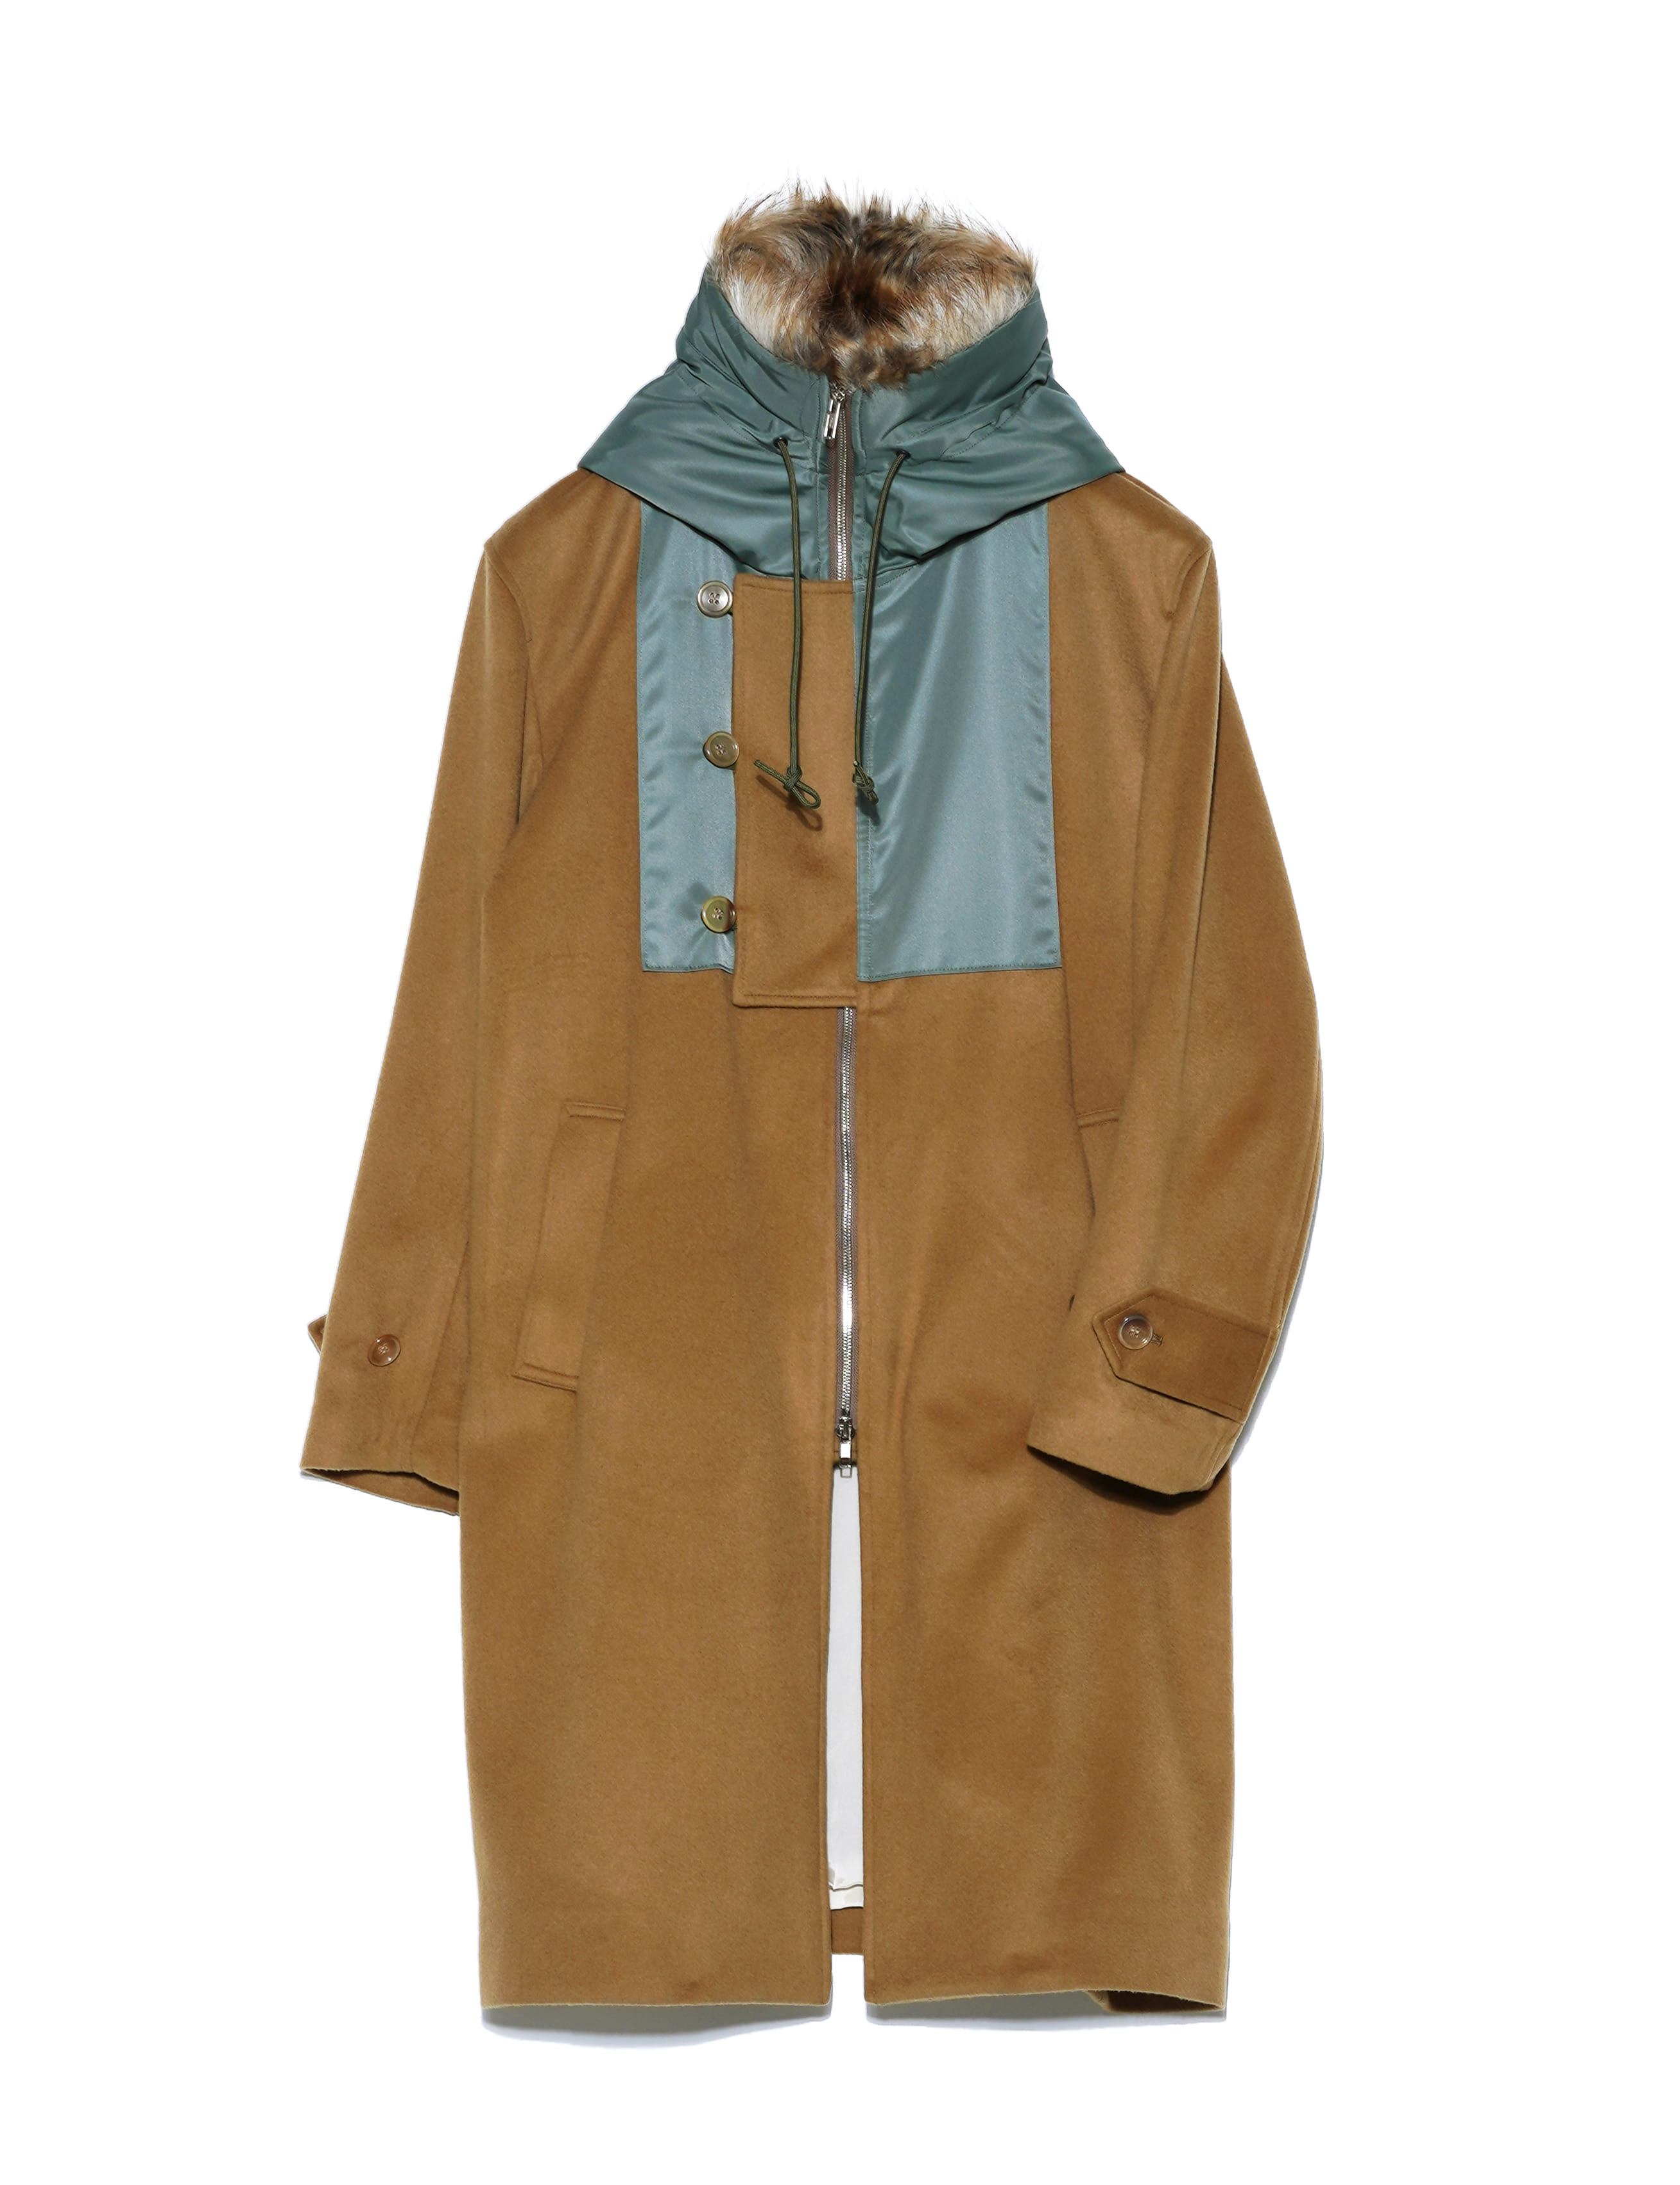 MIX COAT ② (CAMEL)